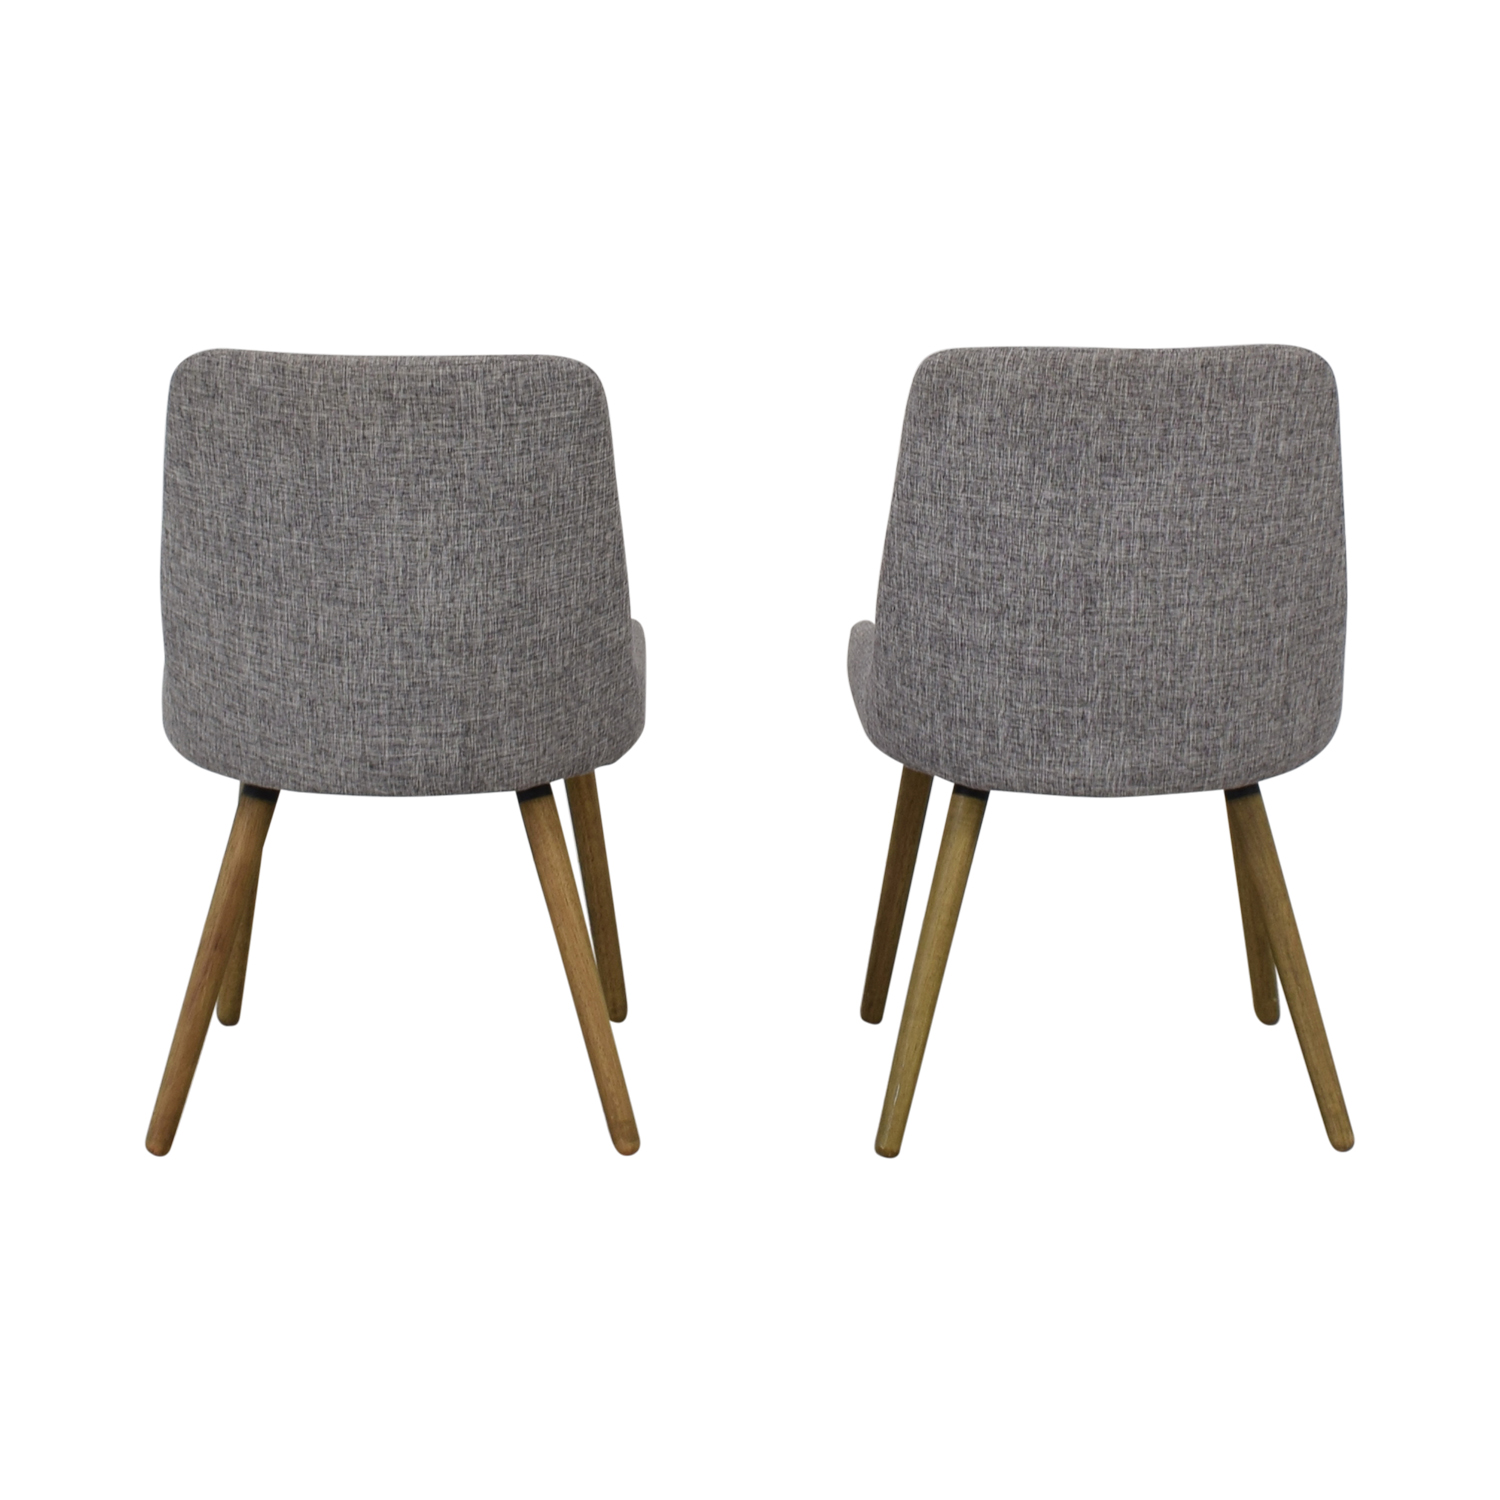 West Elm West Elm Mid-Century Upholstered Dining Chairs discount